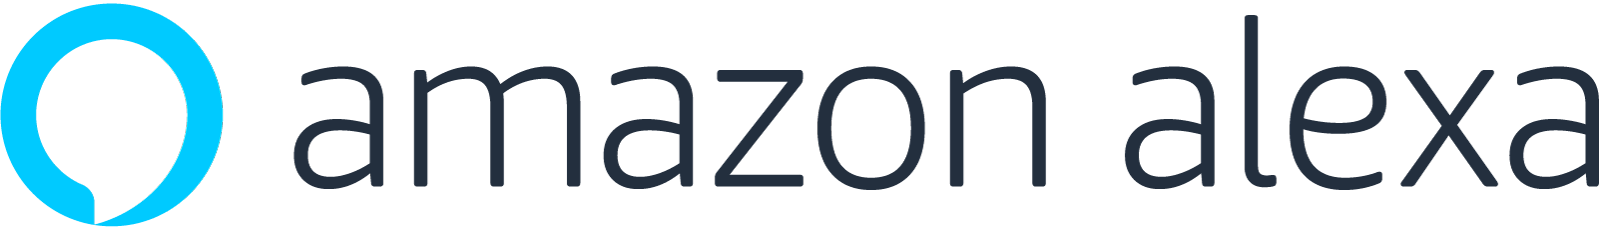 Amazon Alexa sponsor logo